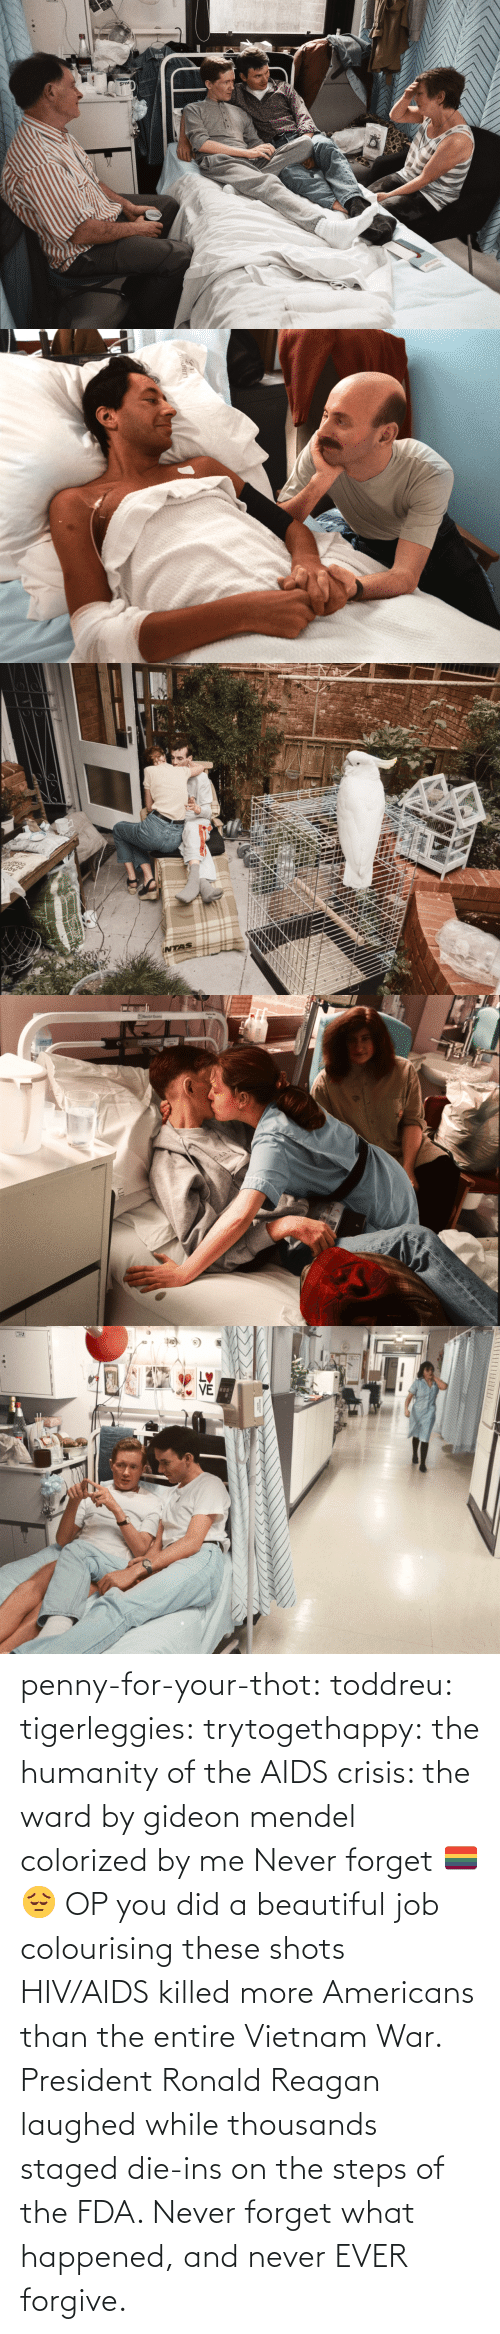 Beautiful, Thot, and Tumblr: STVE  yboagt   INTAS   ENesbit Evans  CAN   LETTI penny-for-your-thot: toddreu:  tigerleggies:  trytogethappy:  the humanity of the AIDS crisis: the ward by gideon mendel colorized by me   Never forget 🏳️‍🌈😔   OP you did a beautiful job colourising these shots   HIV/AIDS killed more Americans than the entire Vietnam War. President Ronald Reagan laughed while thousands staged die-ins on the steps of the FDA. Never forget what happened, and never EVER forgive.